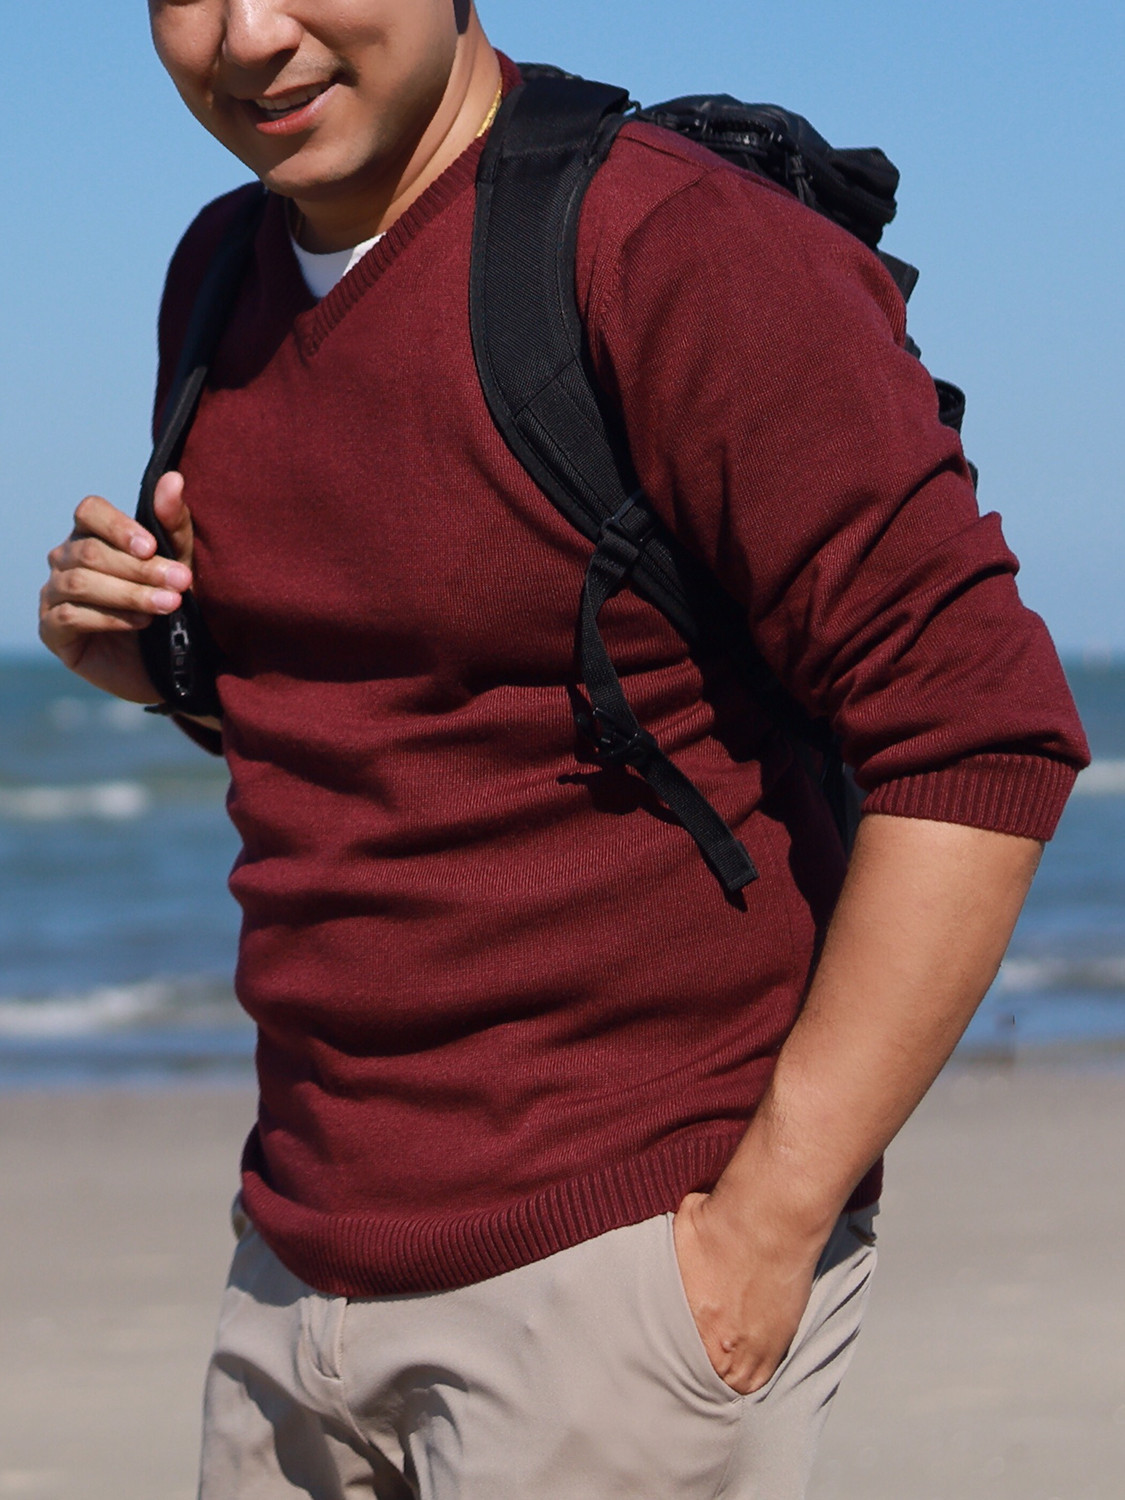 Men's outfit idea for 2021 with red plain crew neck knitted sweater, white crew neck t-shirt, stone chinos, black backpack, white sneakers. Suitable for spring and fall.